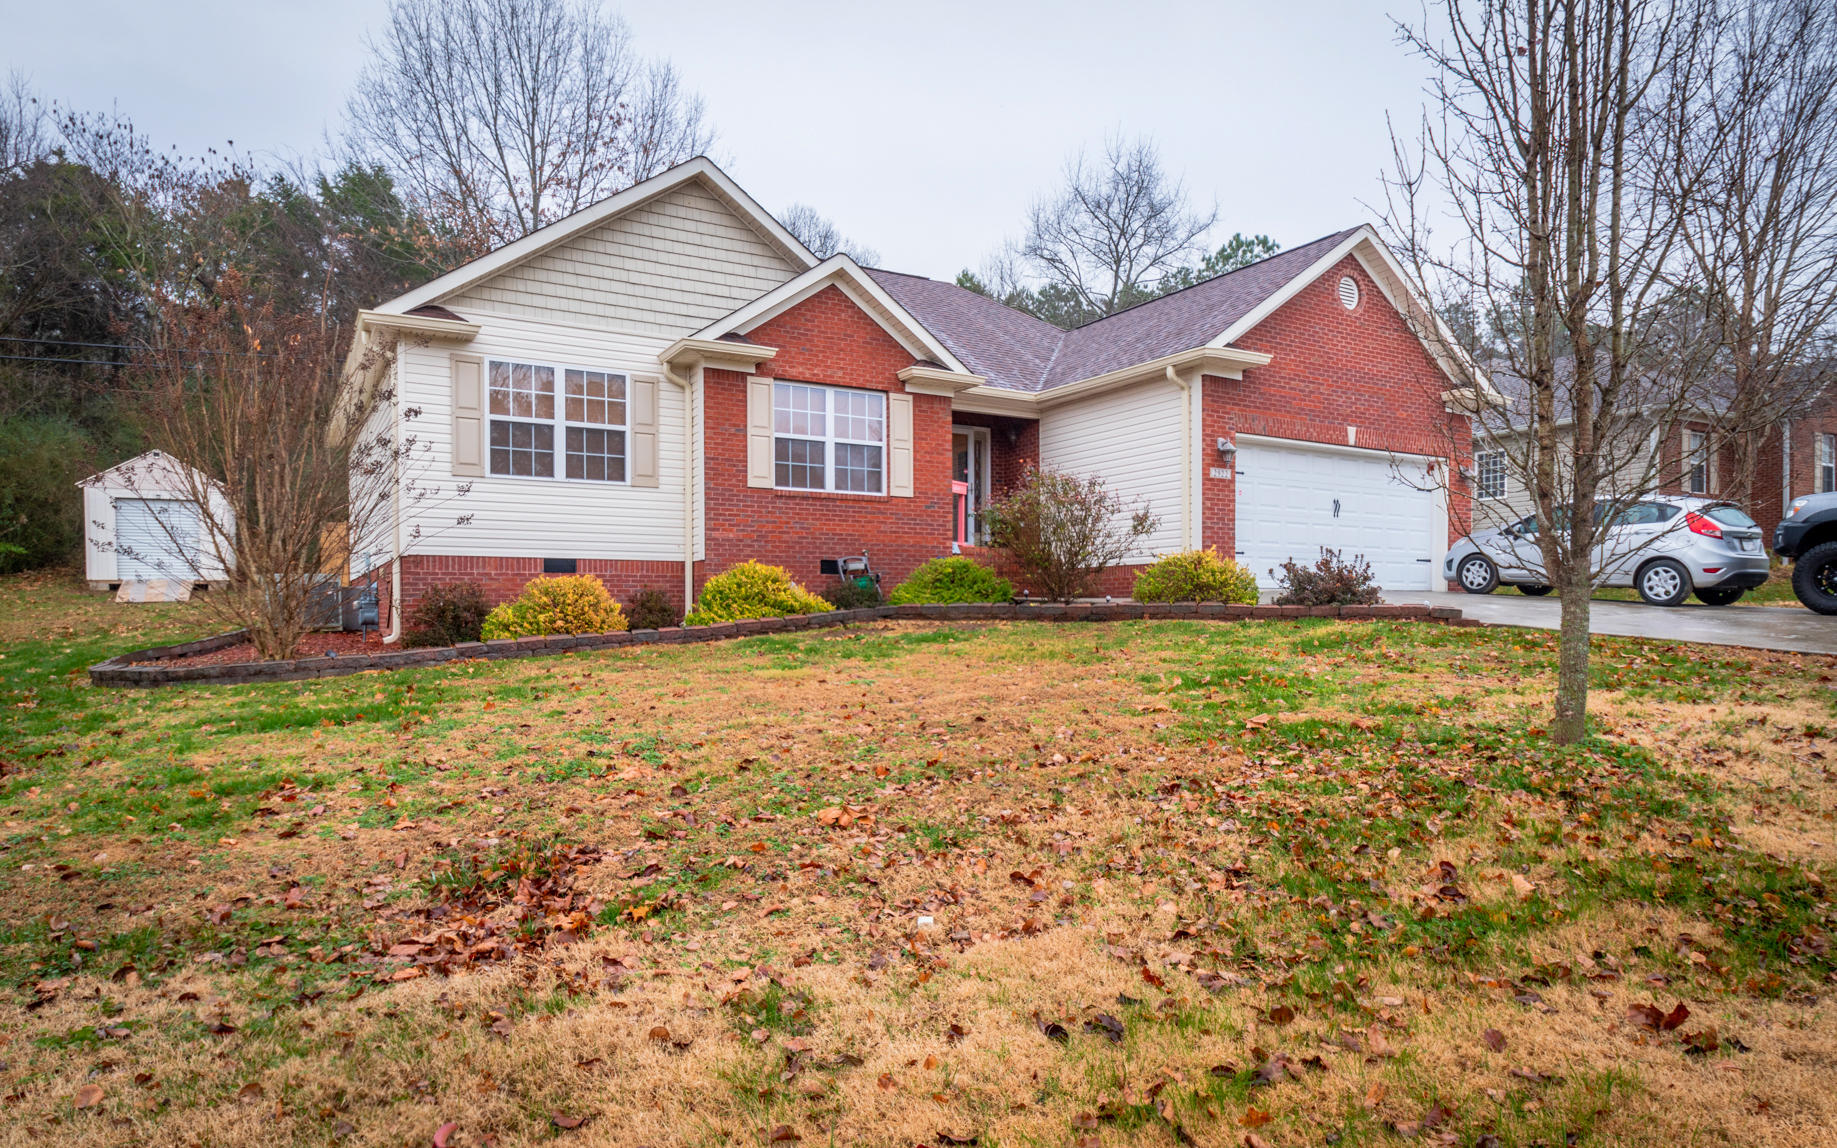 2922 Nw Holliday Dr, Cleveland, TN 37312